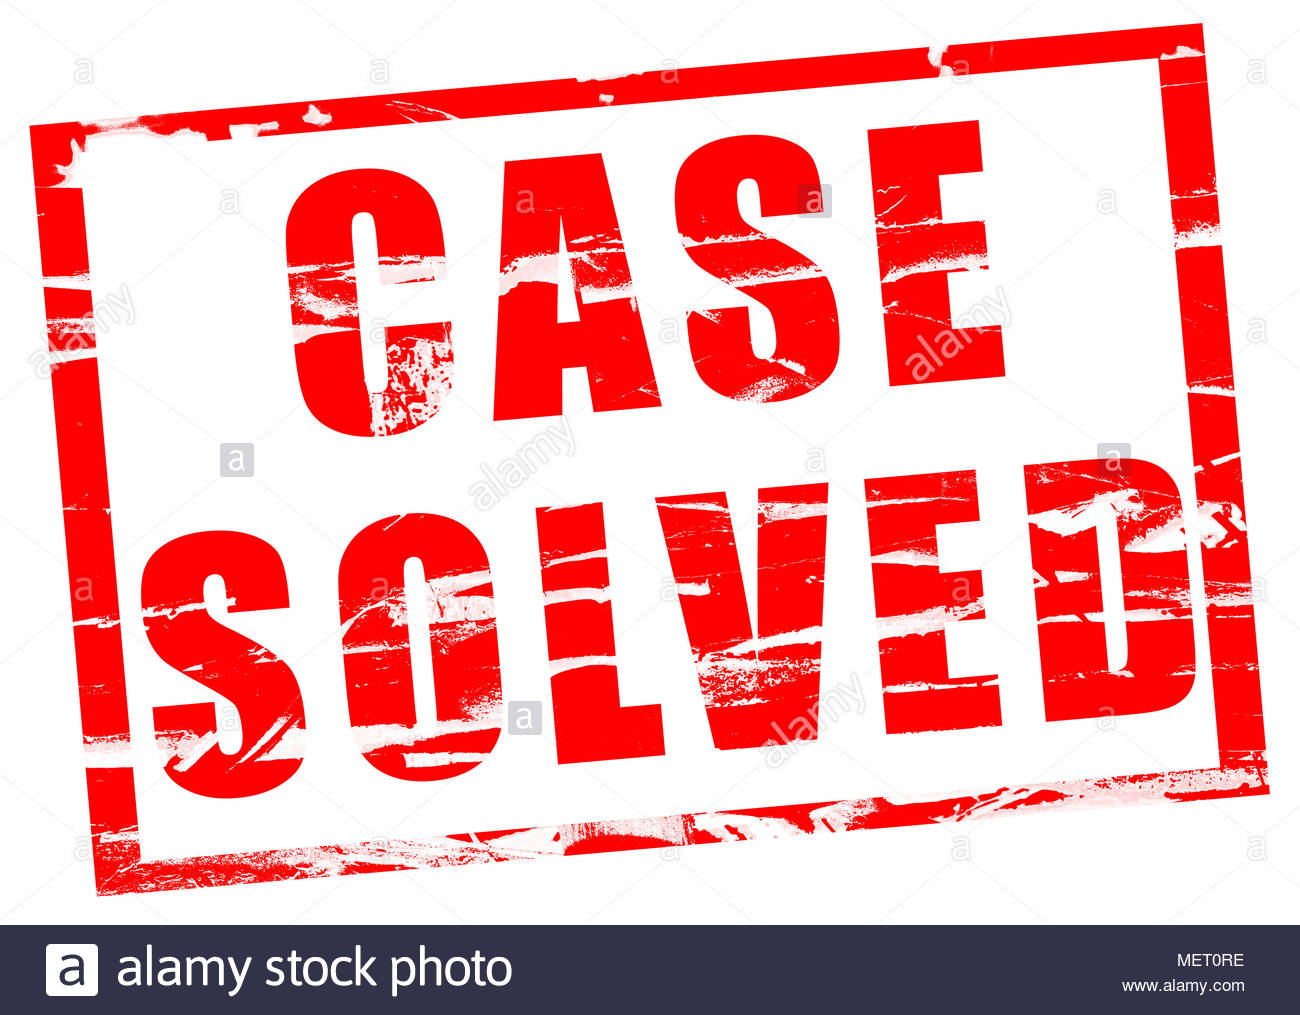 The case is solved